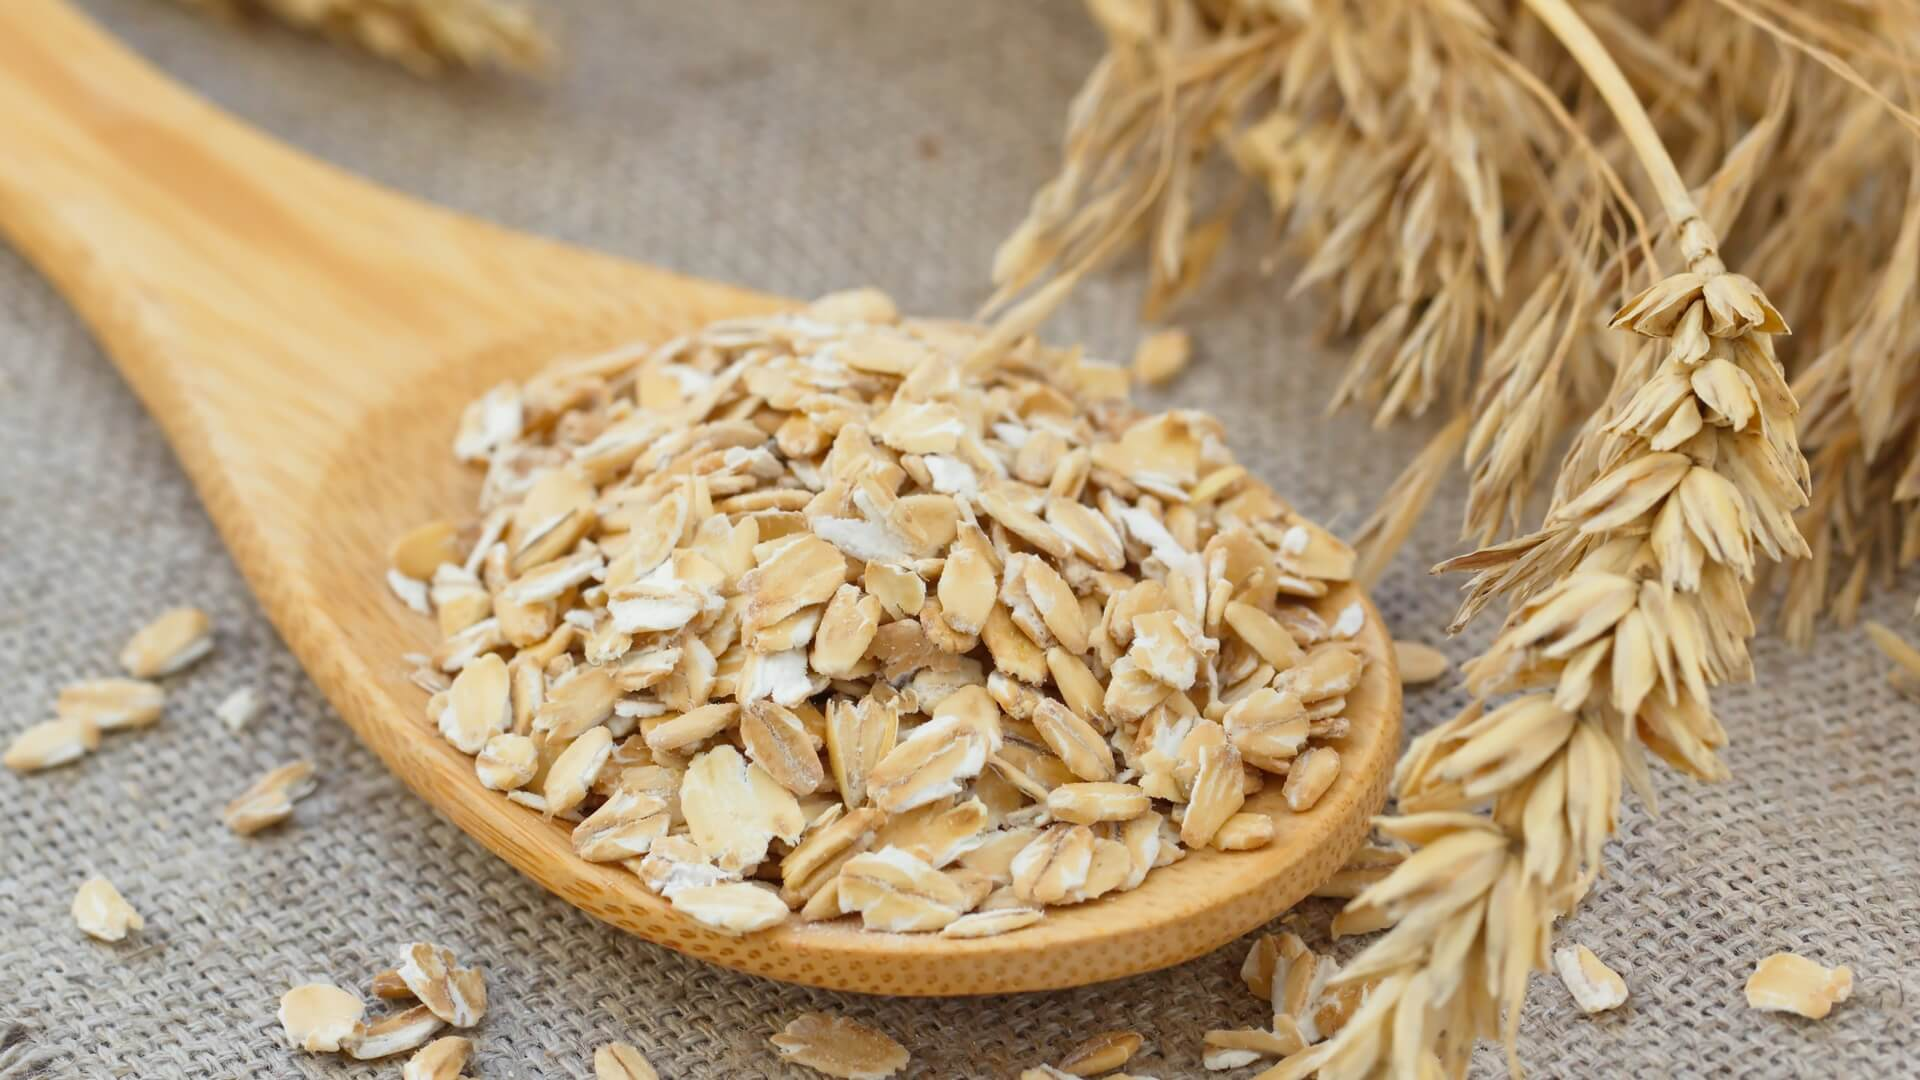 Debunking Some of the Common Misconceptions with Oats